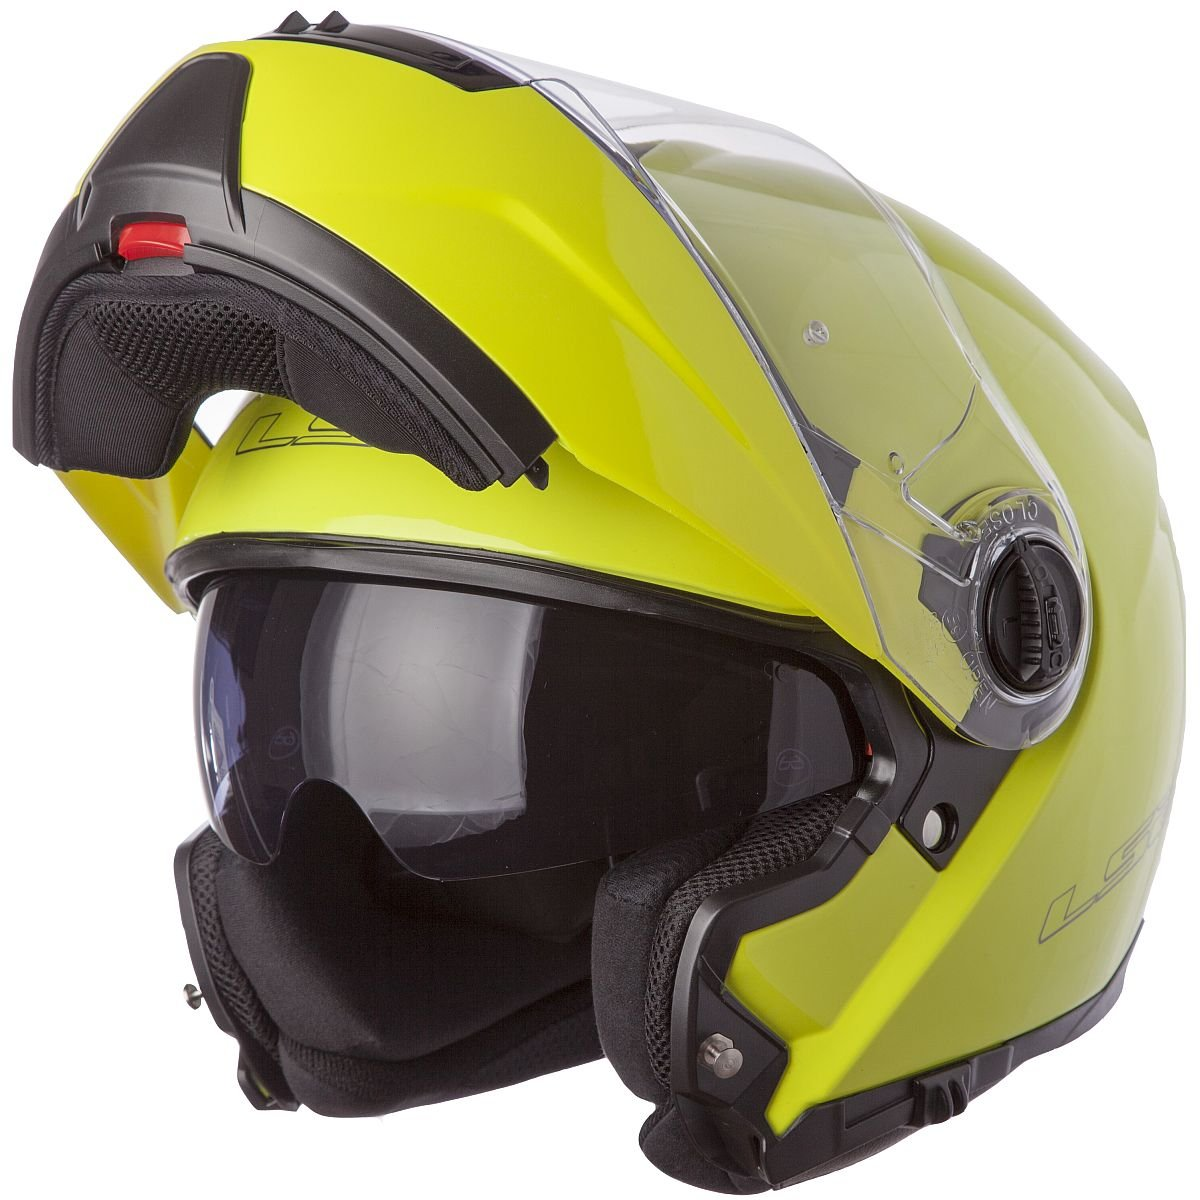 Best motorcycle helmet under 300 within your budget for Best helmet for motor scooter